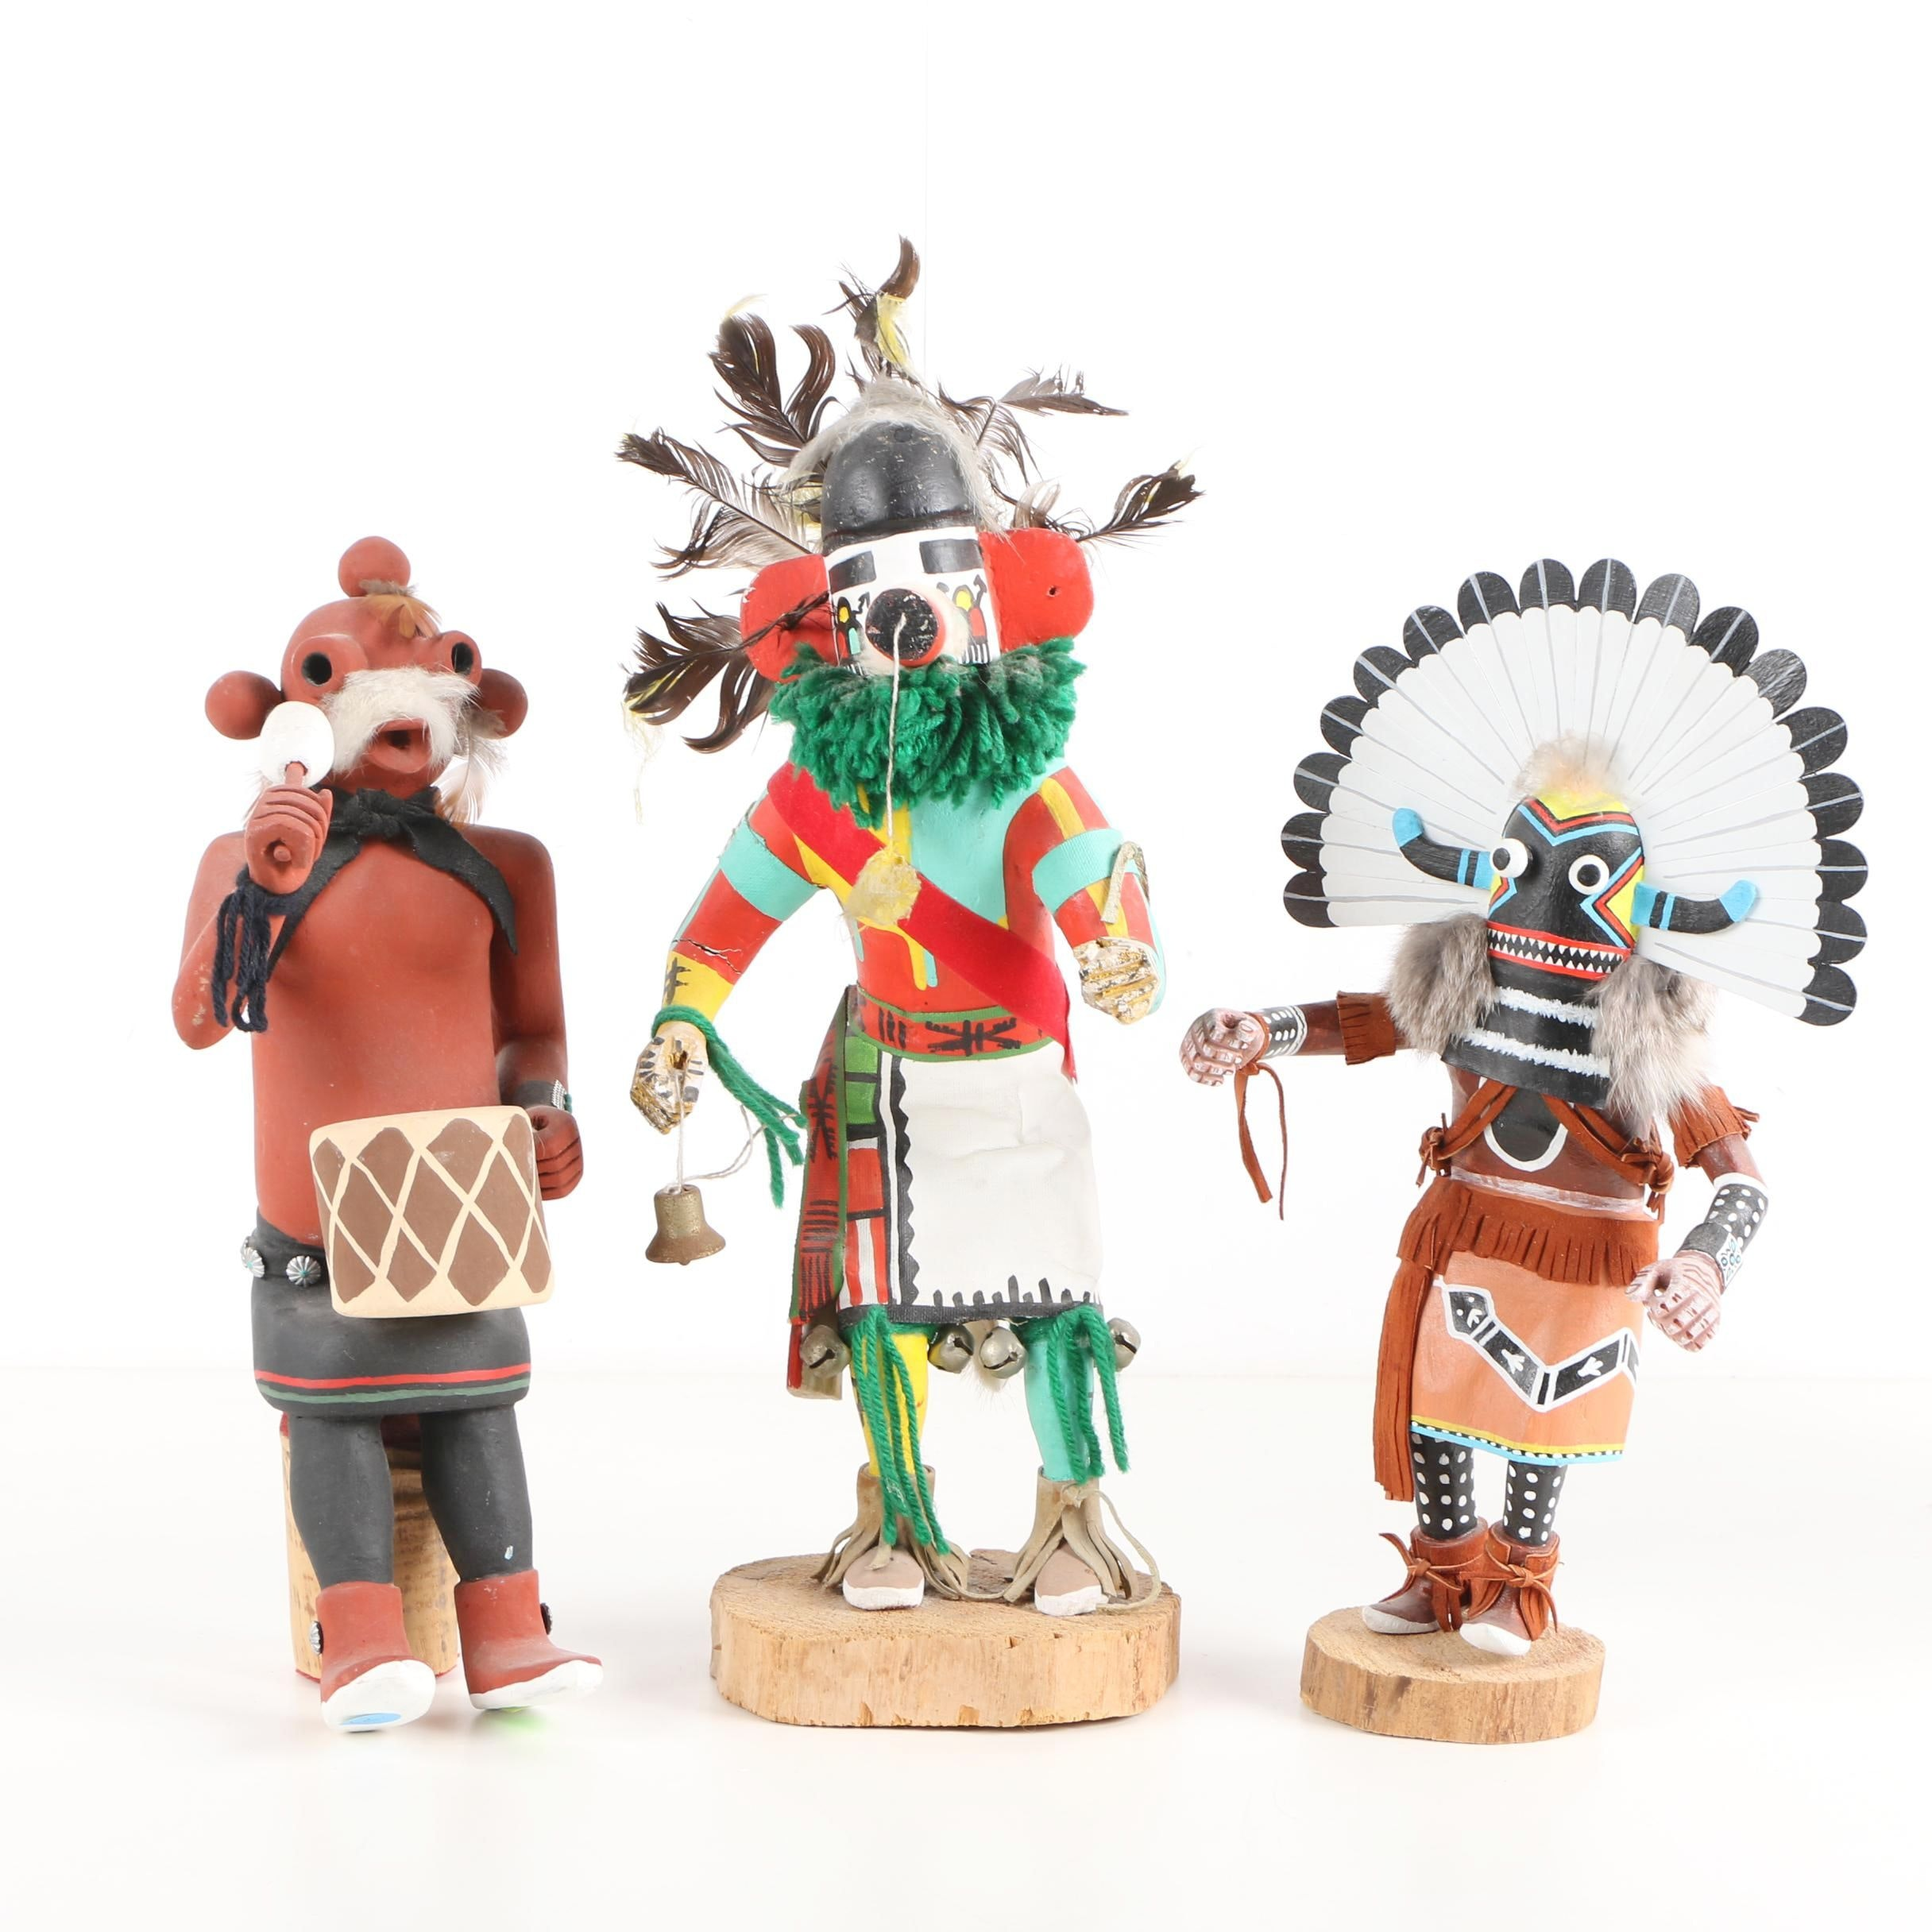 Kachina Dolls and Native American Style Figurine